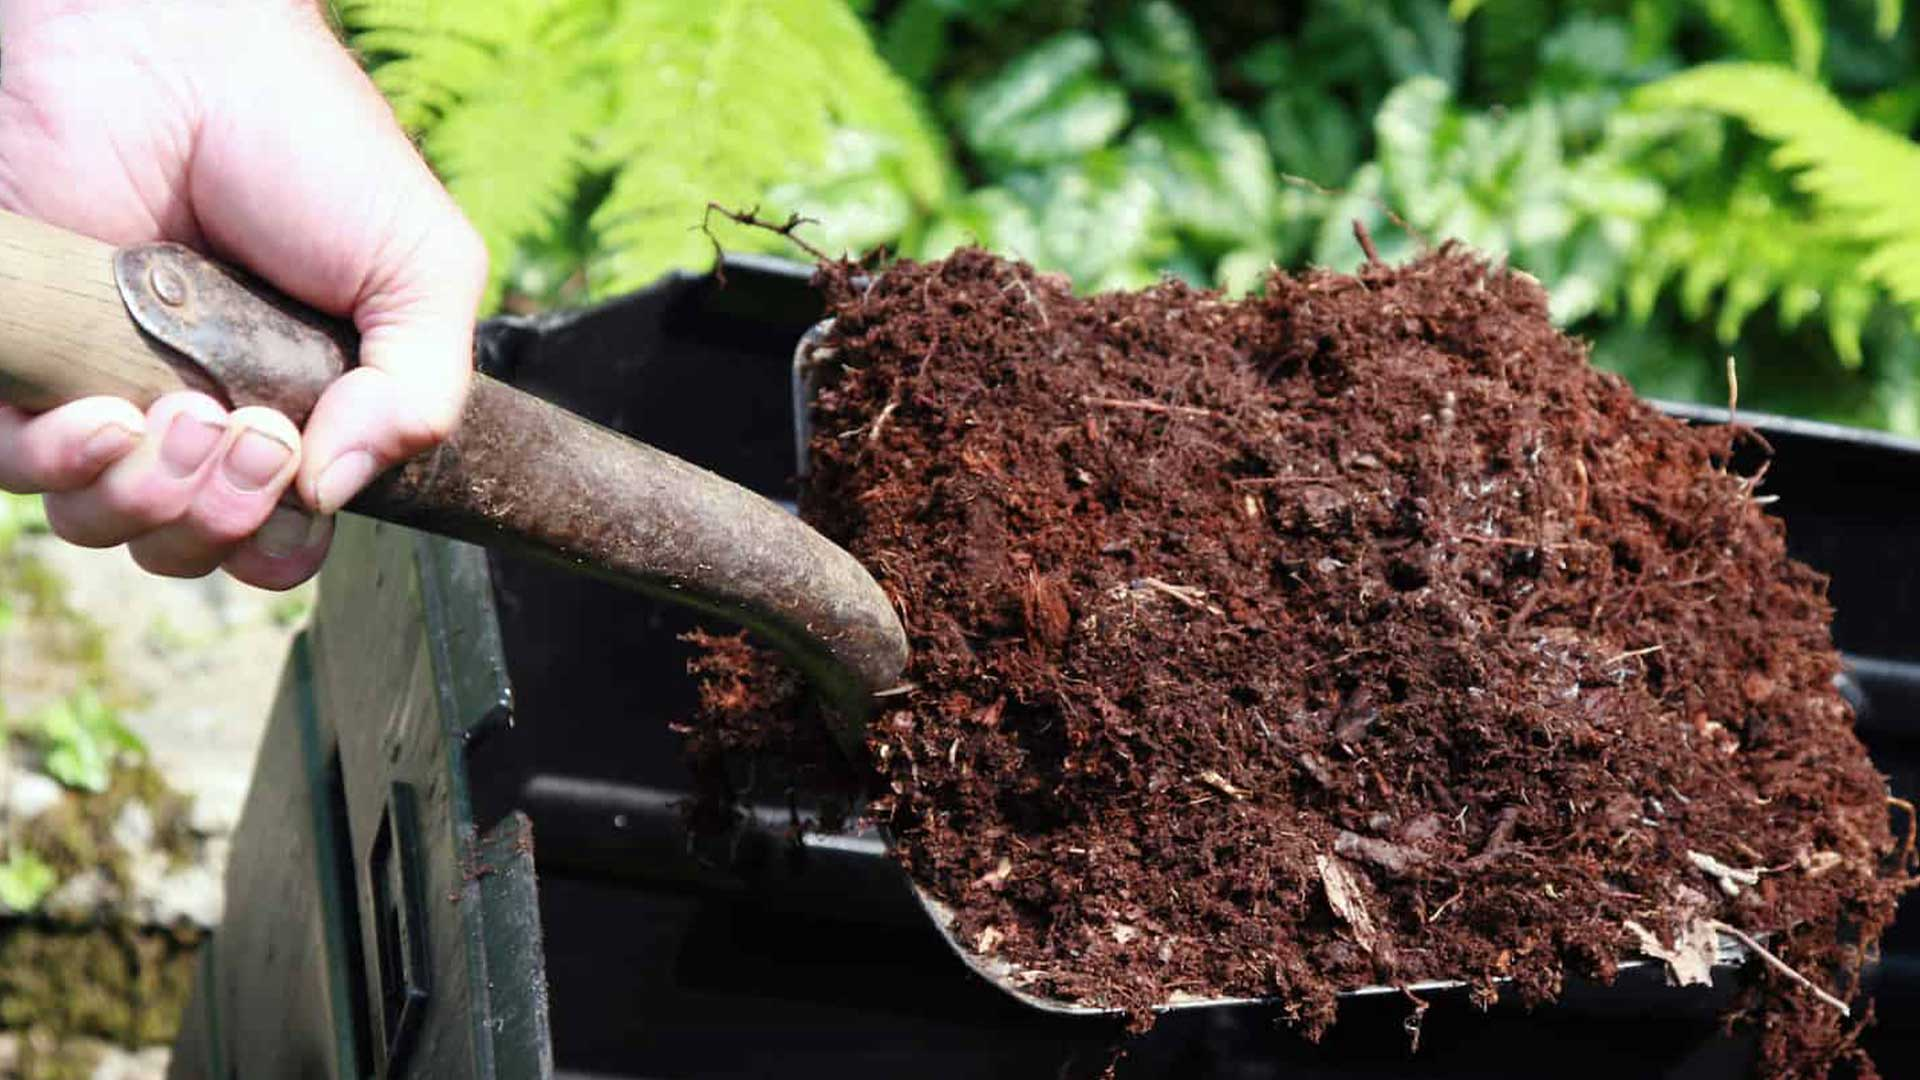 The Compost Story